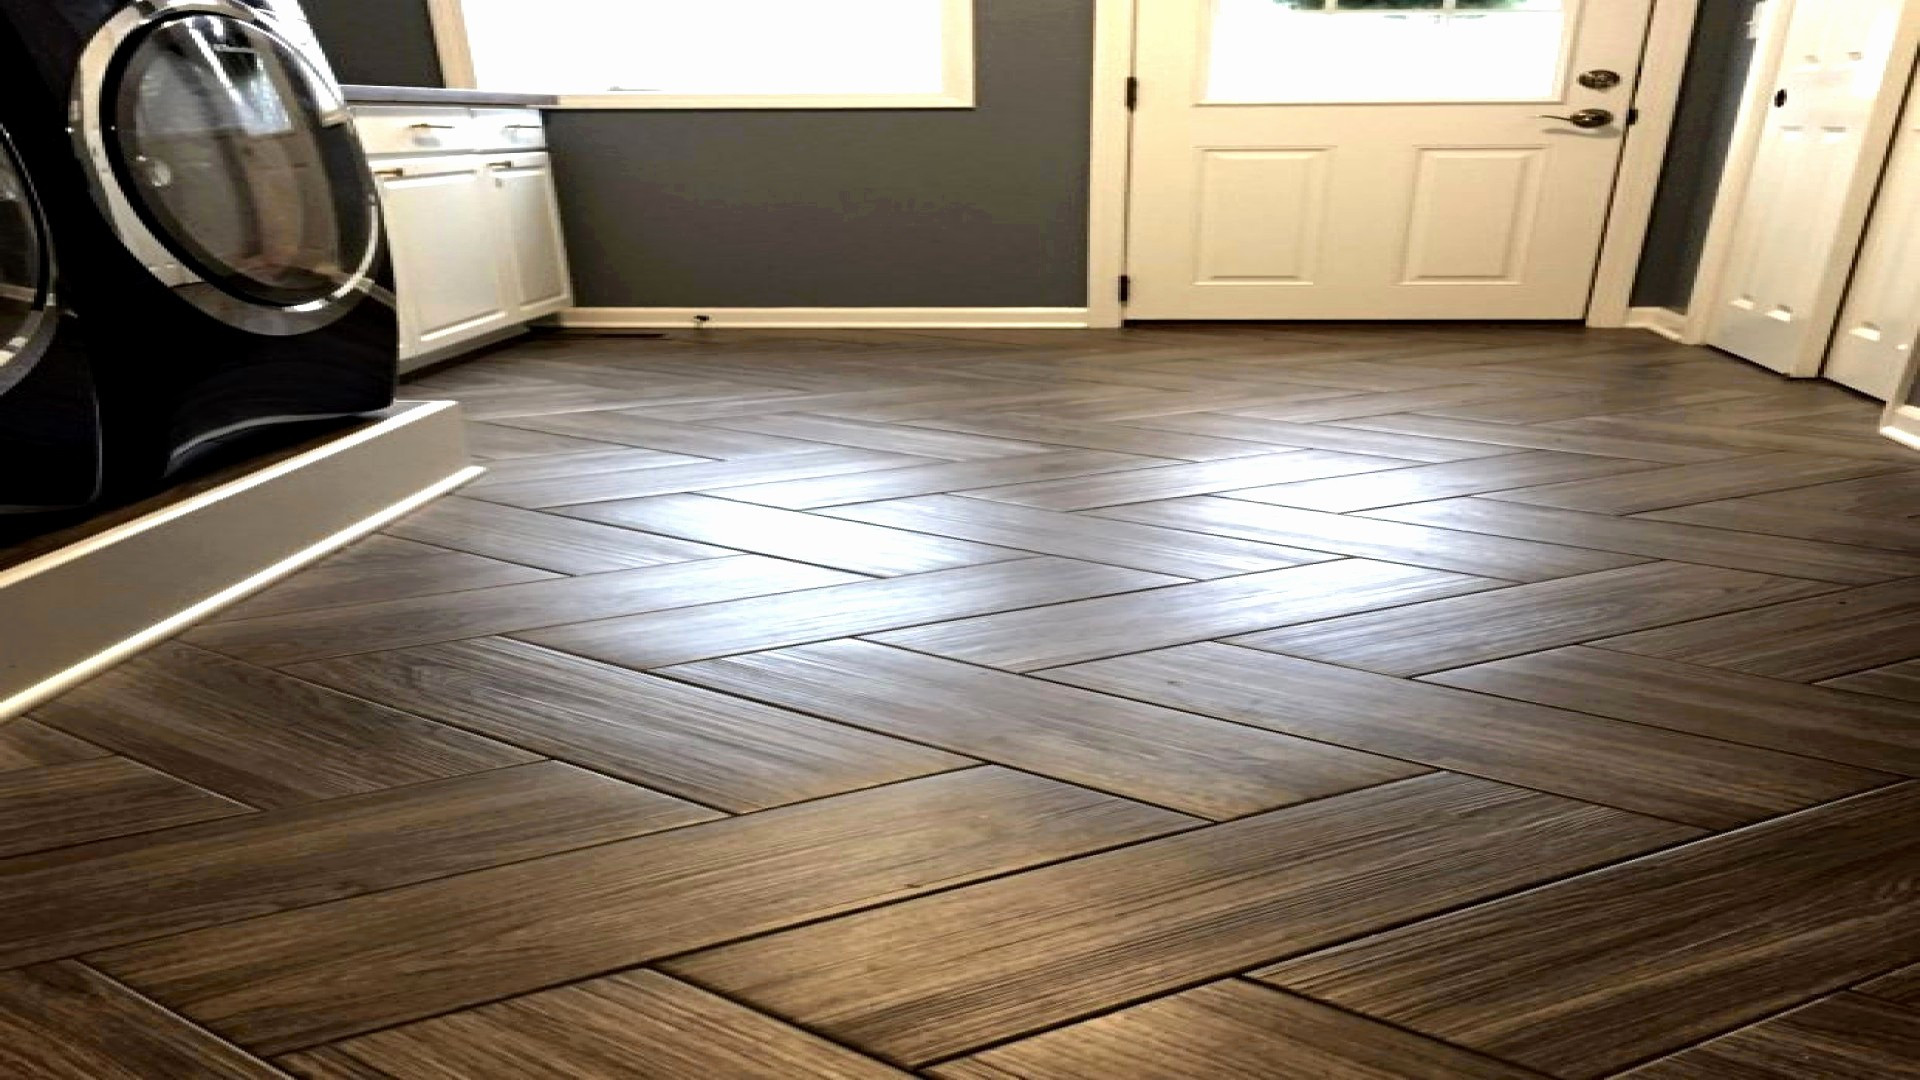 how good is bamboo hardwood flooring of 19 awesome hardwood flooring for sale photograph dizpos com inside hardwood flooring for sale best of 52 luxury wood flooring sale 52 s photograph